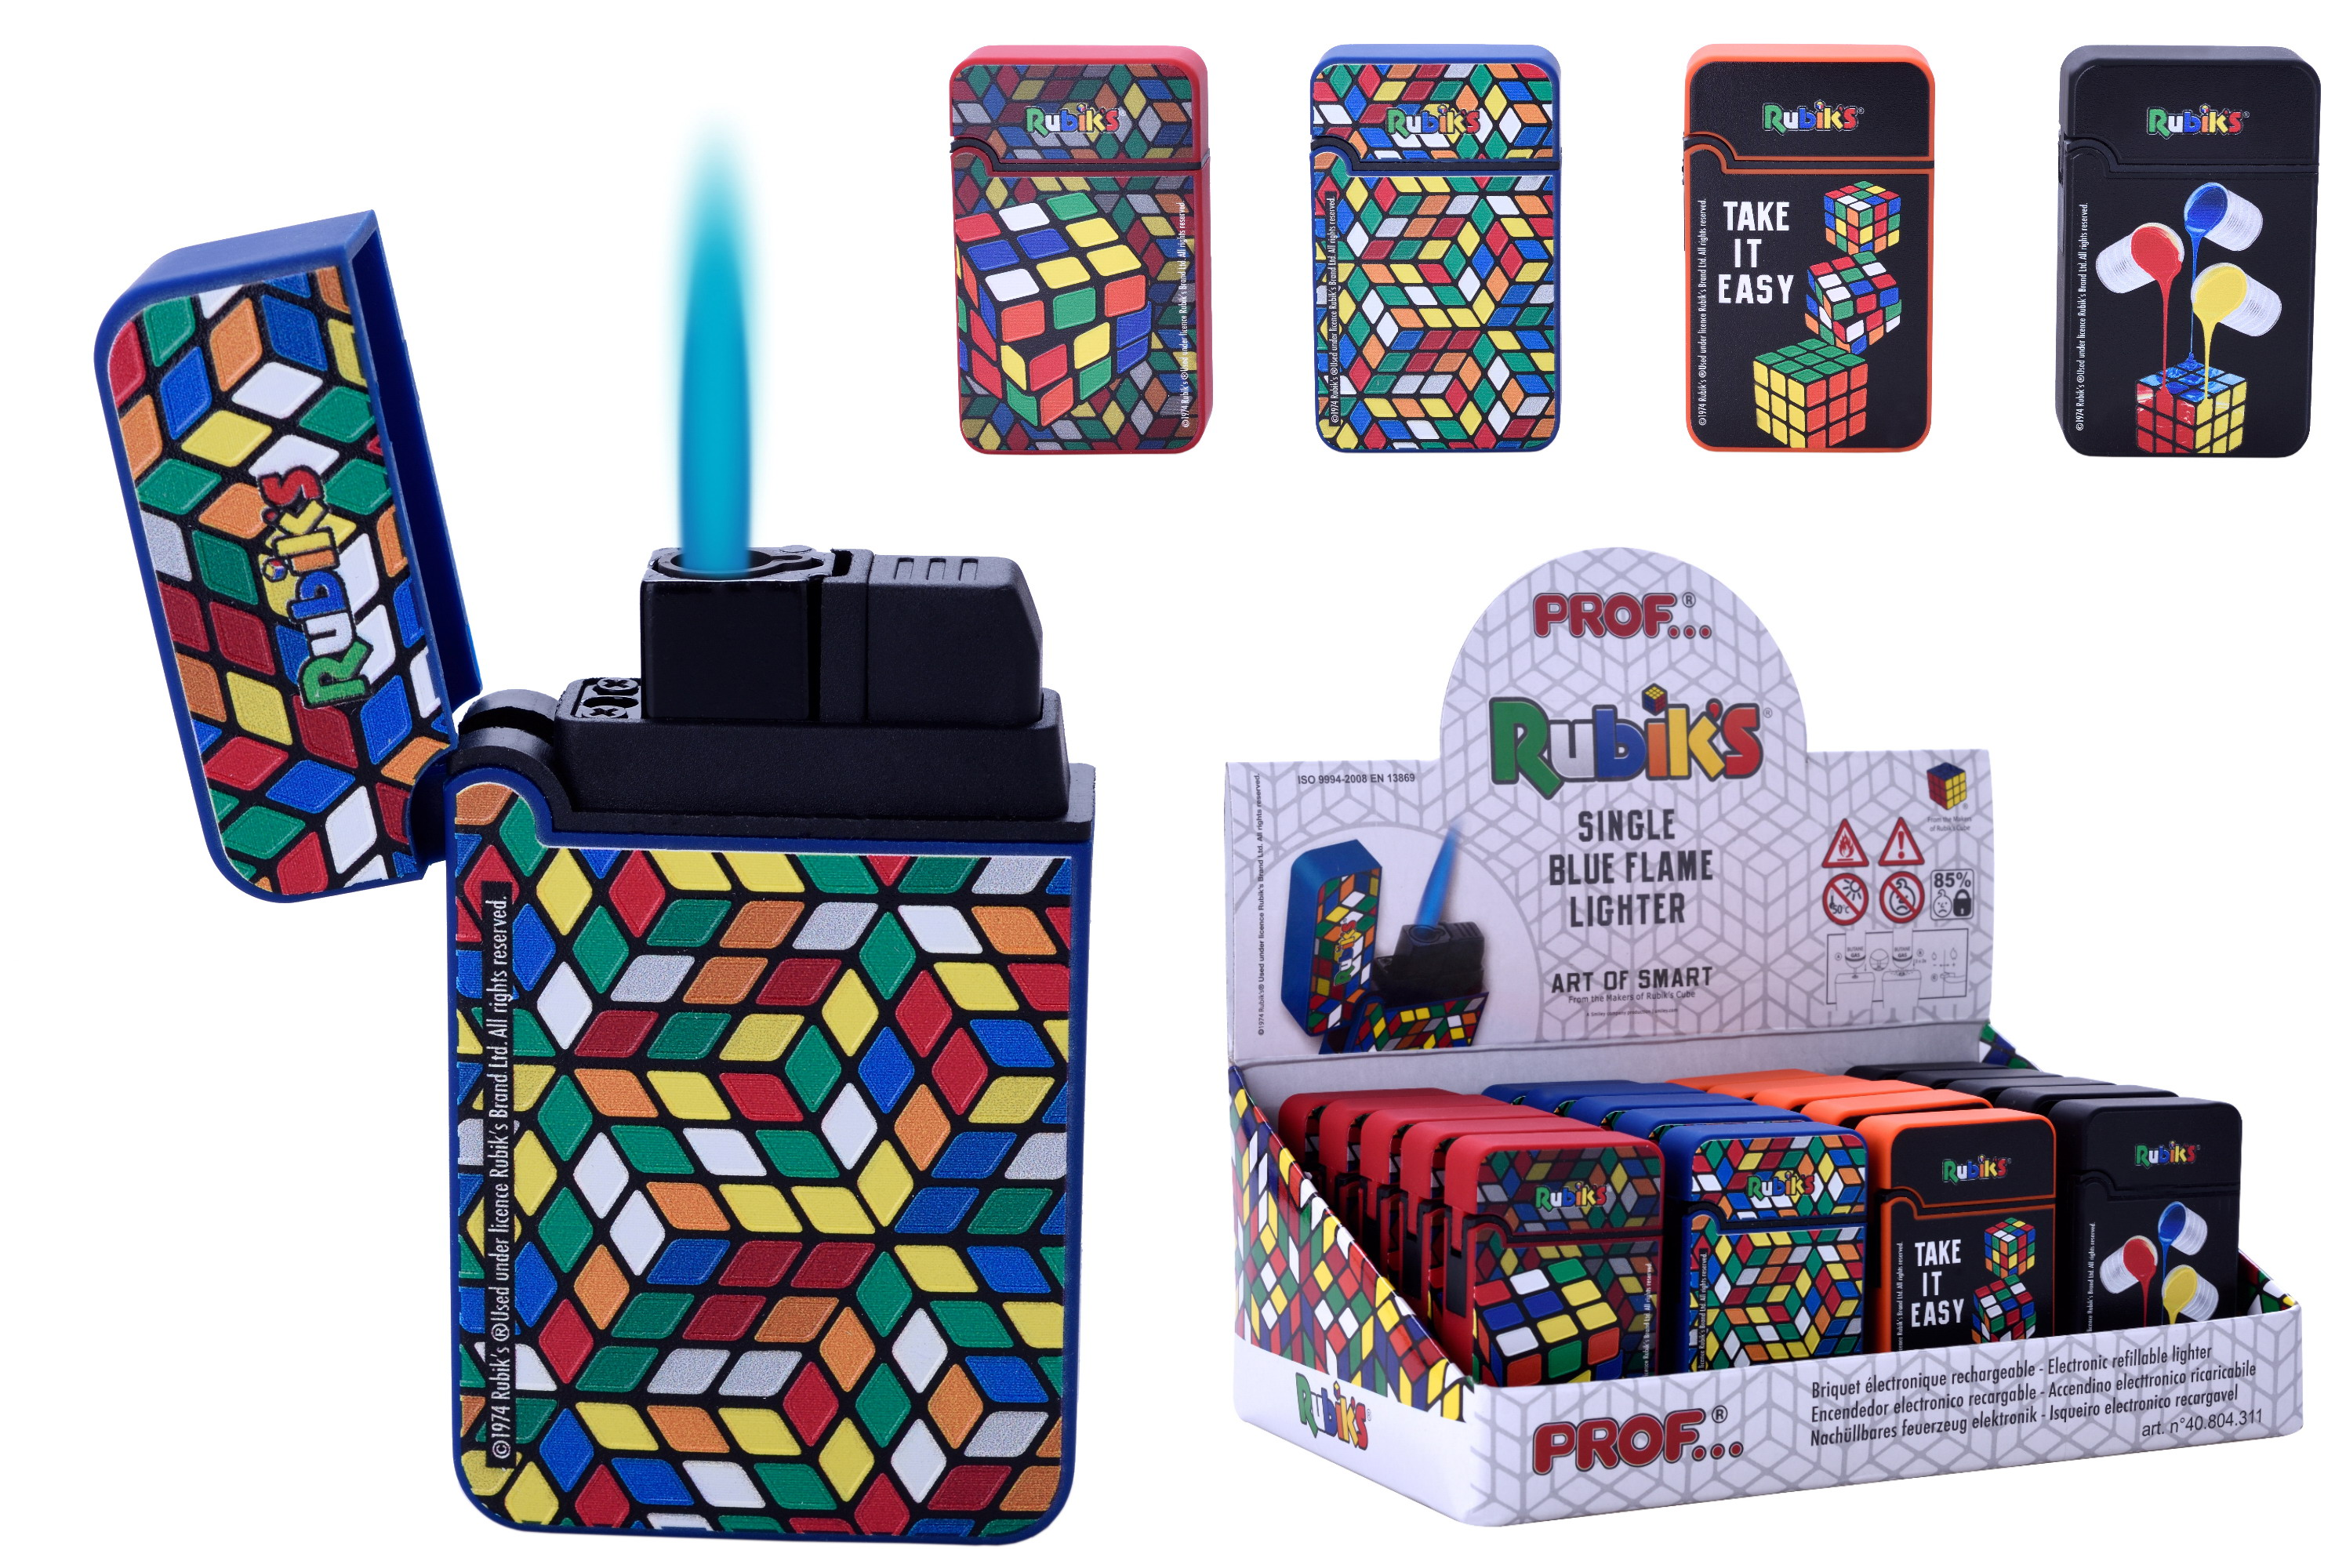 Rubik's Lighter Windproof Blue Flame In Display Box